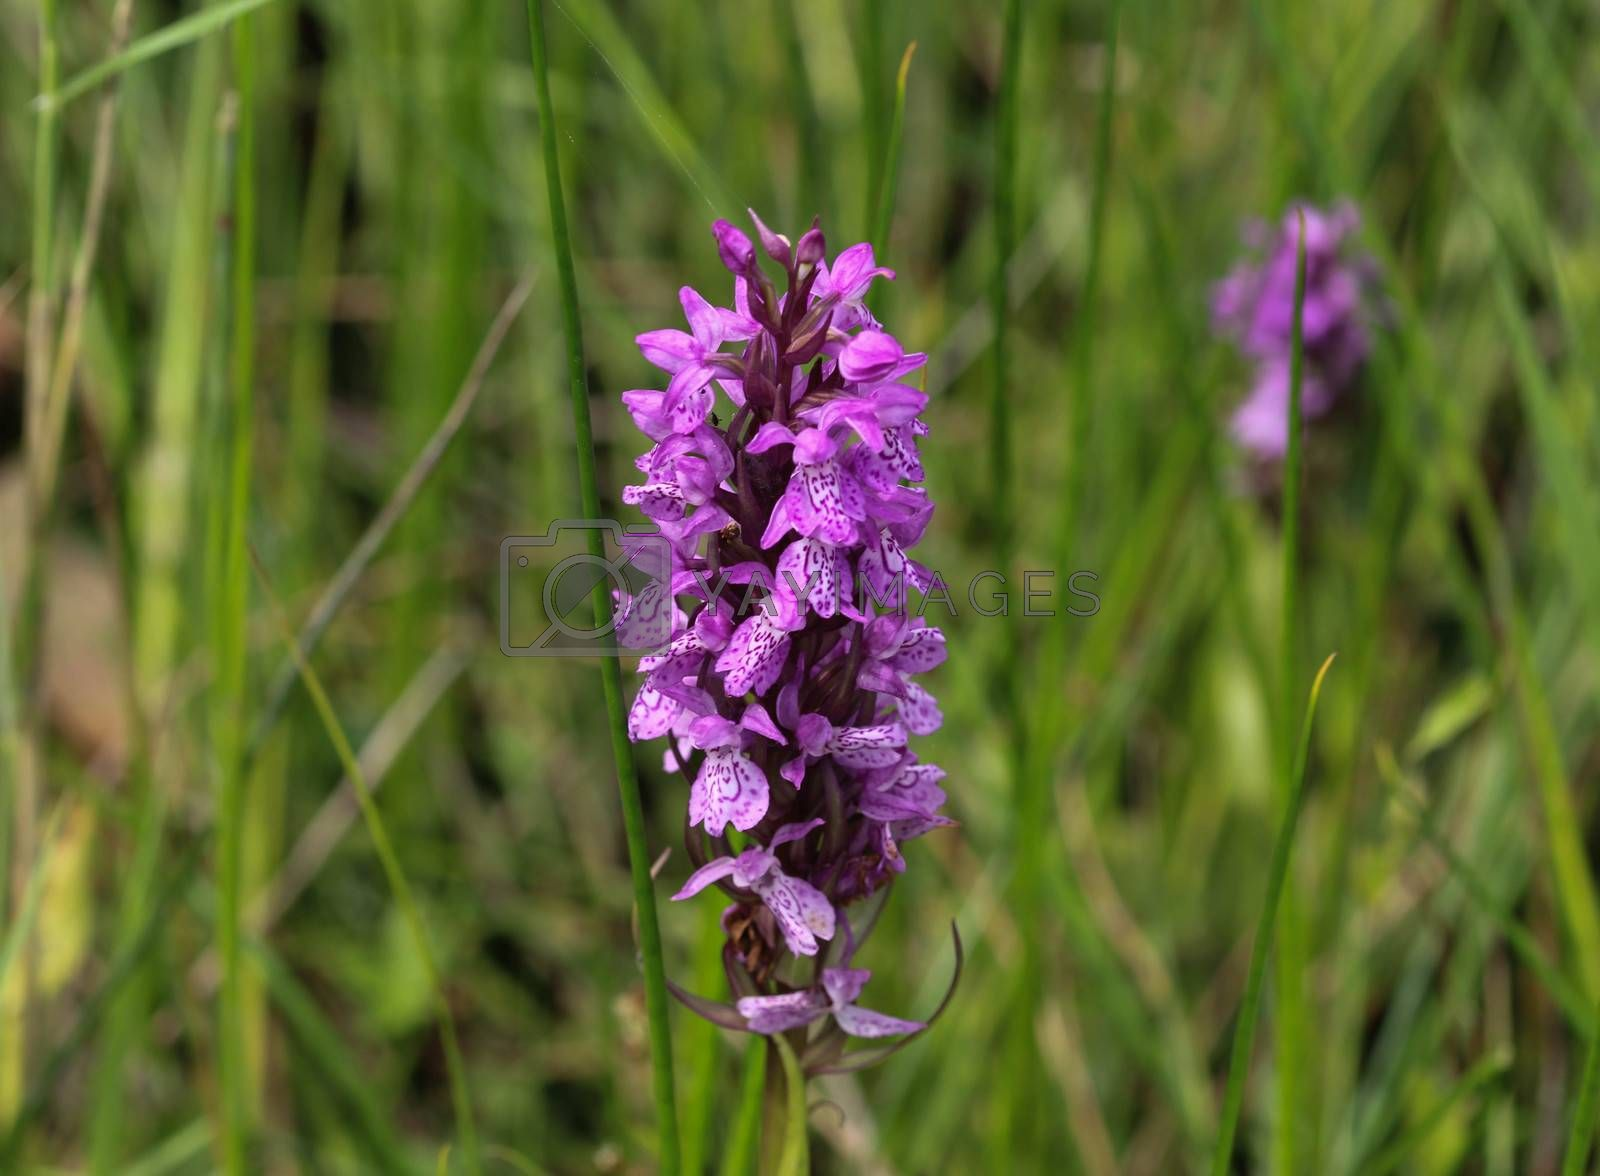 Royalty free image of Dactylorhiza majalis, also known as western marsh orchid, broad-leaved marsh orchid, fan orchid, common marsh or Irish marsh orchid, blooming in spring on wet grassland by michaelmeijer